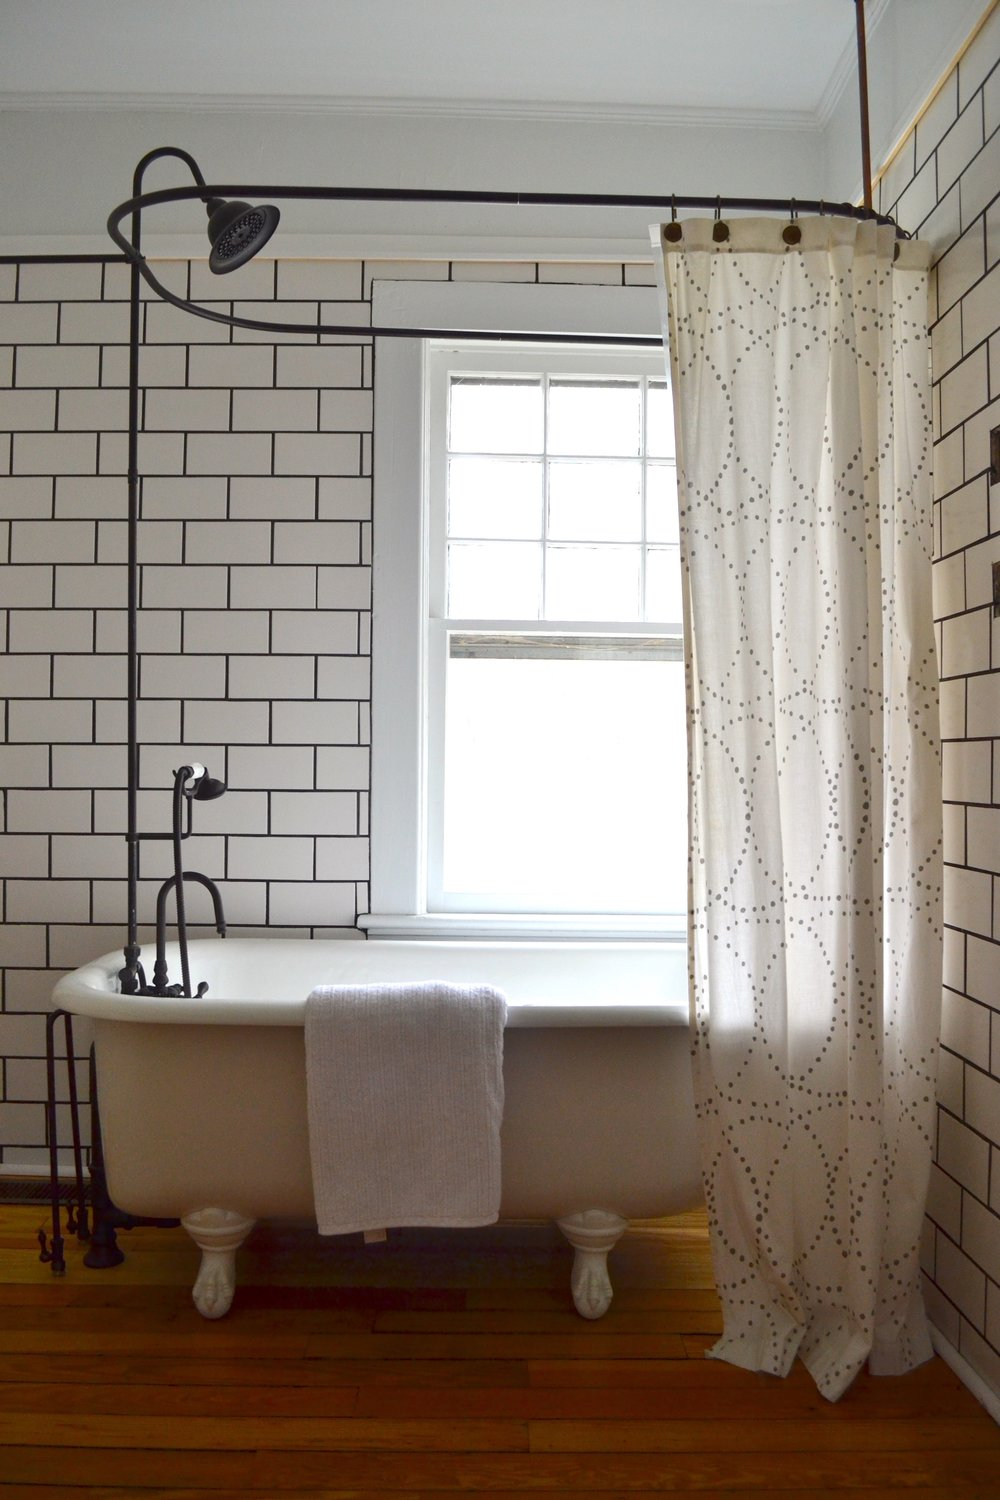 7 Things You Need To Know About Your Clawfoot Tub Shower The White